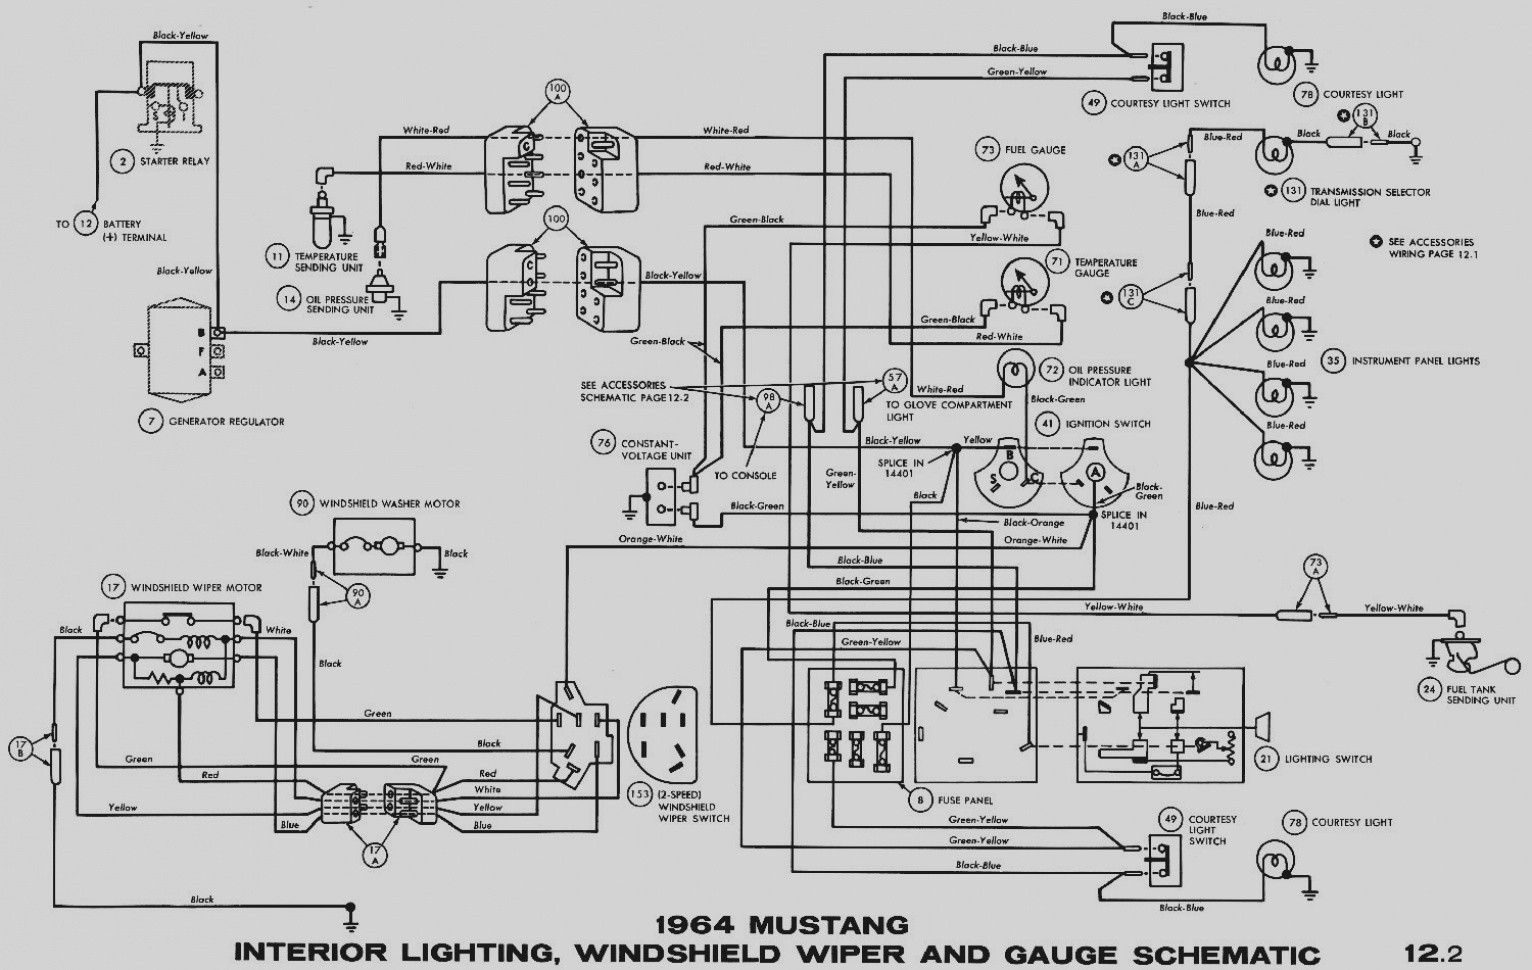 1965 Chevy Turn Signal Wiring Schematic Starting Know About 69 Mustang Fuse Box Labeled Ford Torino Diagram U2022 For Free